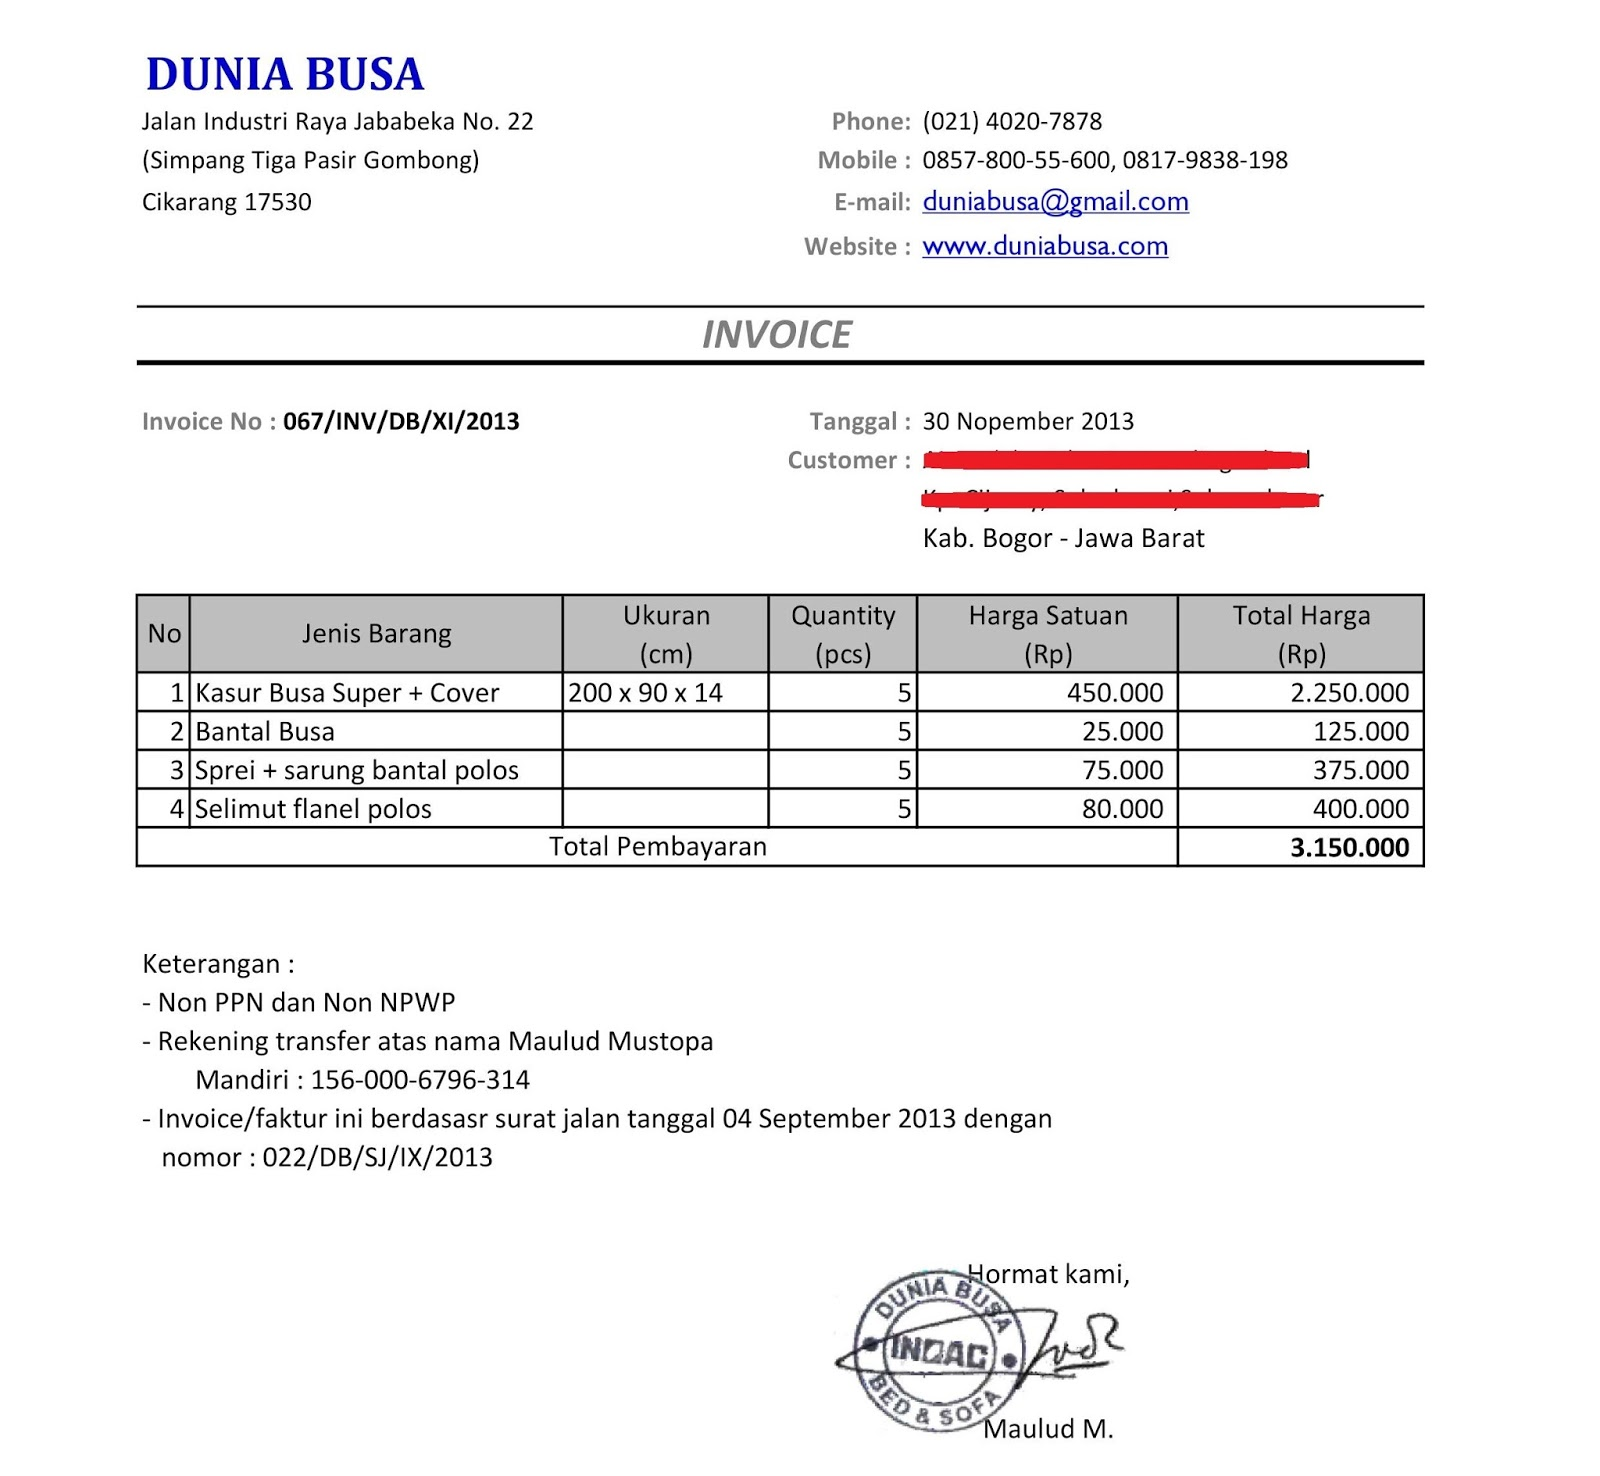 Opposenewapstandardsus  Unique Free Invoice Online  Create Invoice Online  Invoice Template  With Licious Contoh Format Invoice Atau Surat Tagihan  Brankas Arsip  Free Invoice Online With Extraordinary Cheap Invoices Also What Does Invoice Price Mean For Cars In Addition Invoice Approval Stamp And Sample Excel Invoice As Well As Florida Toll By Plate Invoice Additionally Invoice Design Template From Sklepco With Opposenewapstandardsus  Licious Free Invoice Online  Create Invoice Online  Invoice Template  With Extraordinary Contoh Format Invoice Atau Surat Tagihan  Brankas Arsip  Free Invoice Online And Unique Cheap Invoices Also What Does Invoice Price Mean For Cars In Addition Invoice Approval Stamp From Sklepco